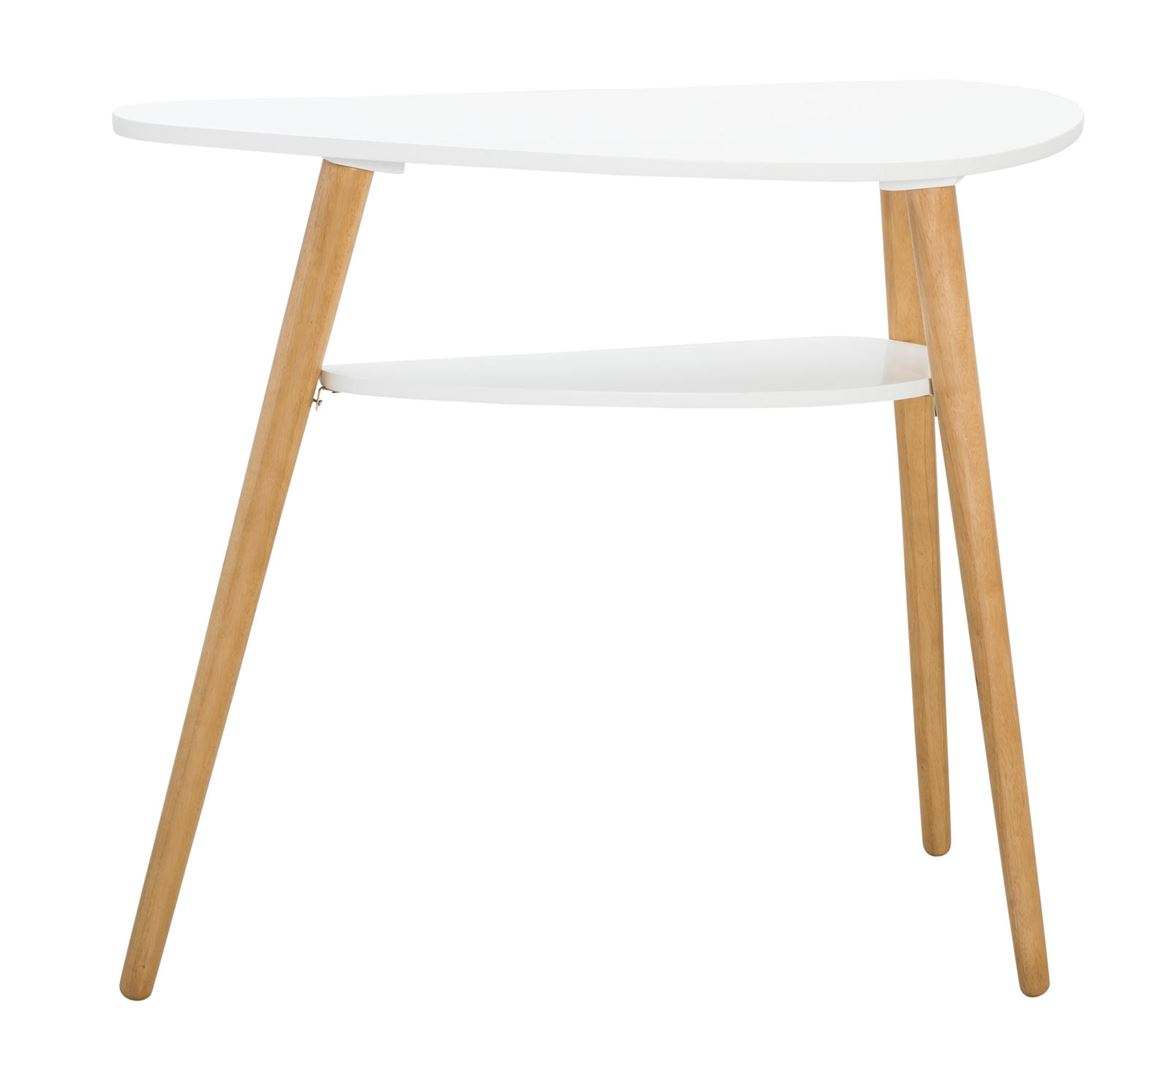 SURF Table murale blanc, naturel H 80 x Larg. 35 x Long. 95 cm_surf-table-murale-blanc,-naturel-h-80-x-larg--35-x-long--95-cm